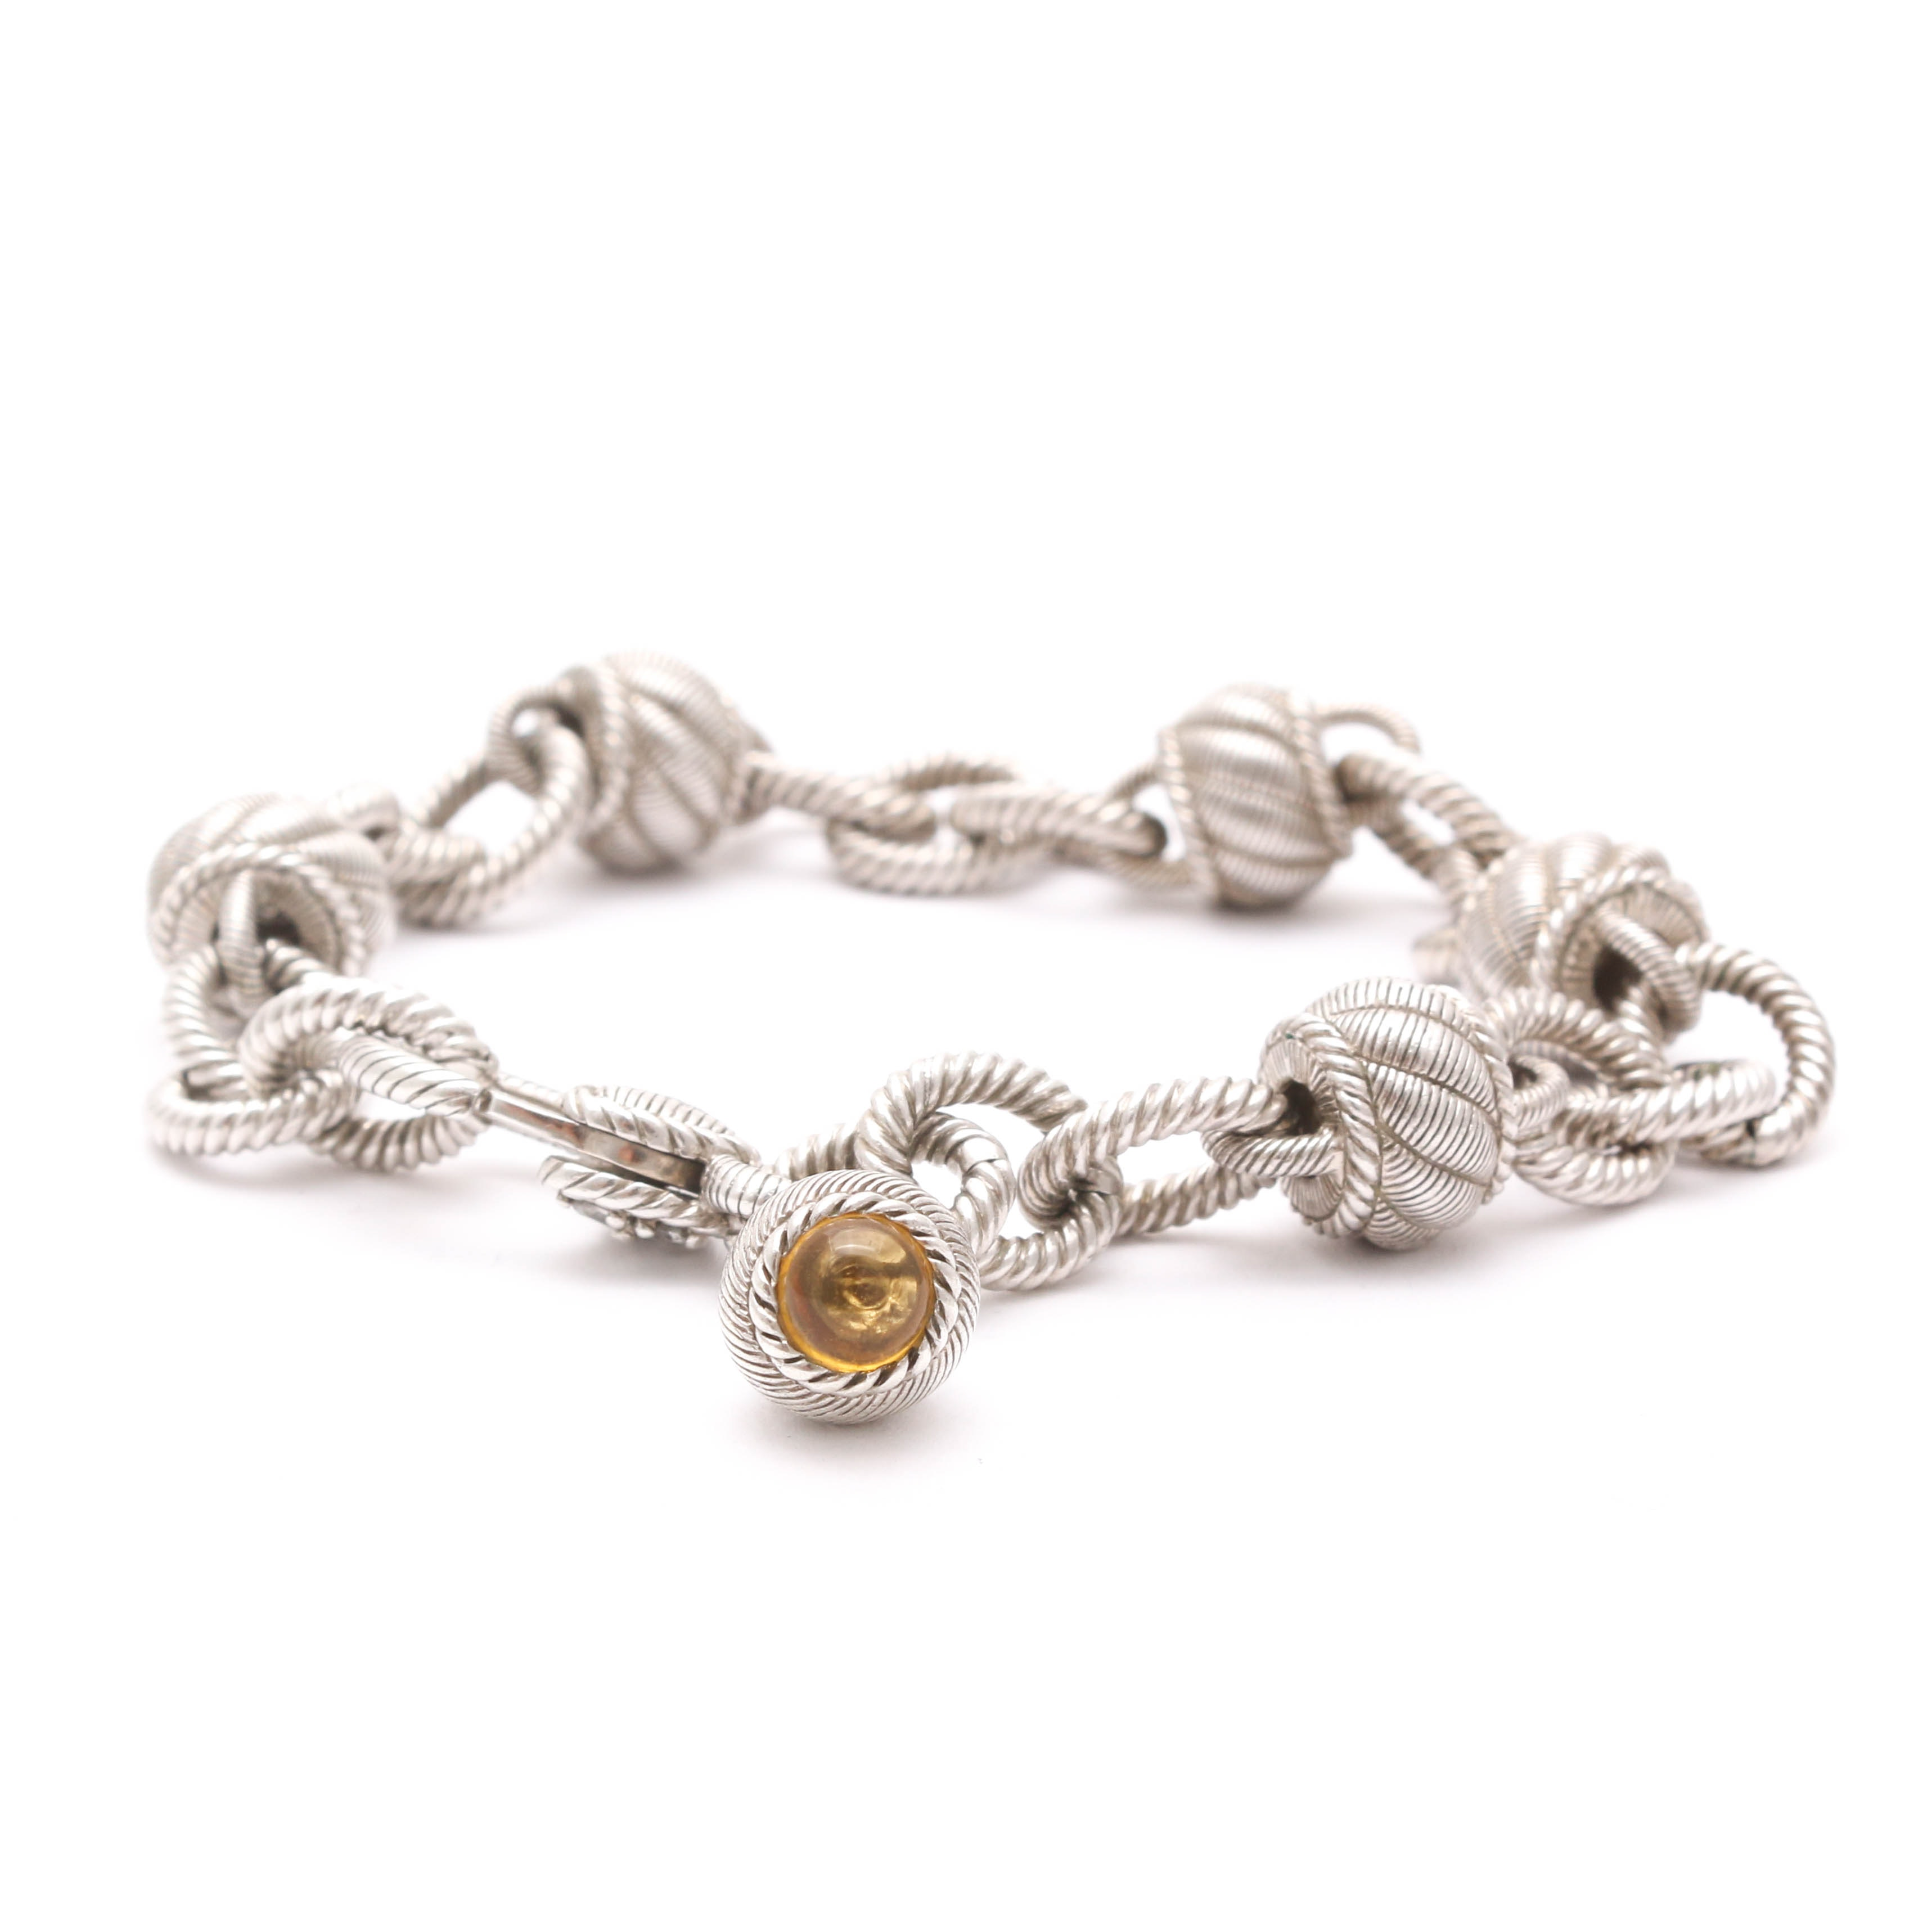 Tooled Sterling Silver Bracelet with Glass Accents